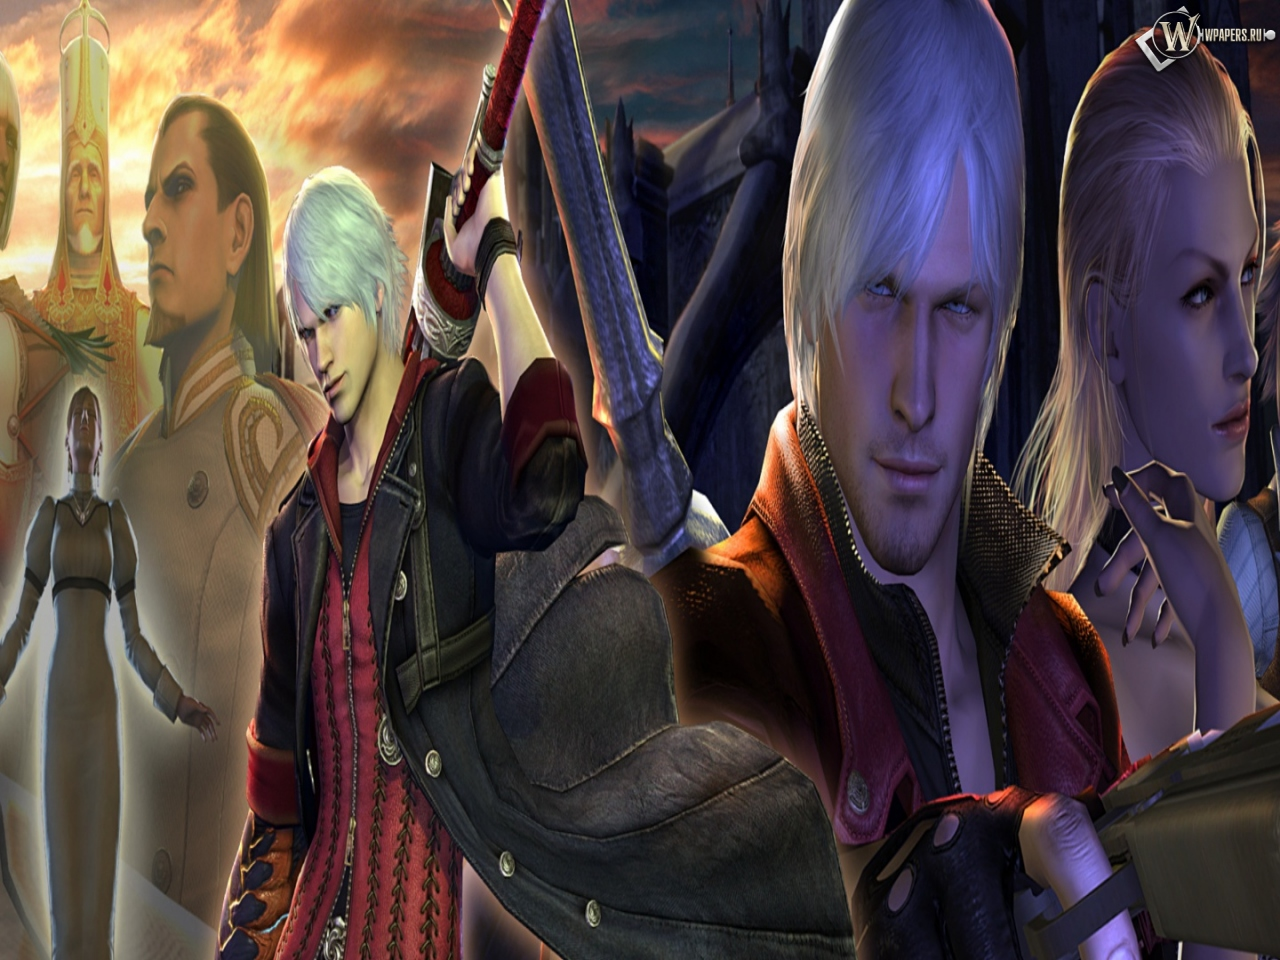 Картинки Devil May Cry 4 На Рабочий Стол Во Весь Экран